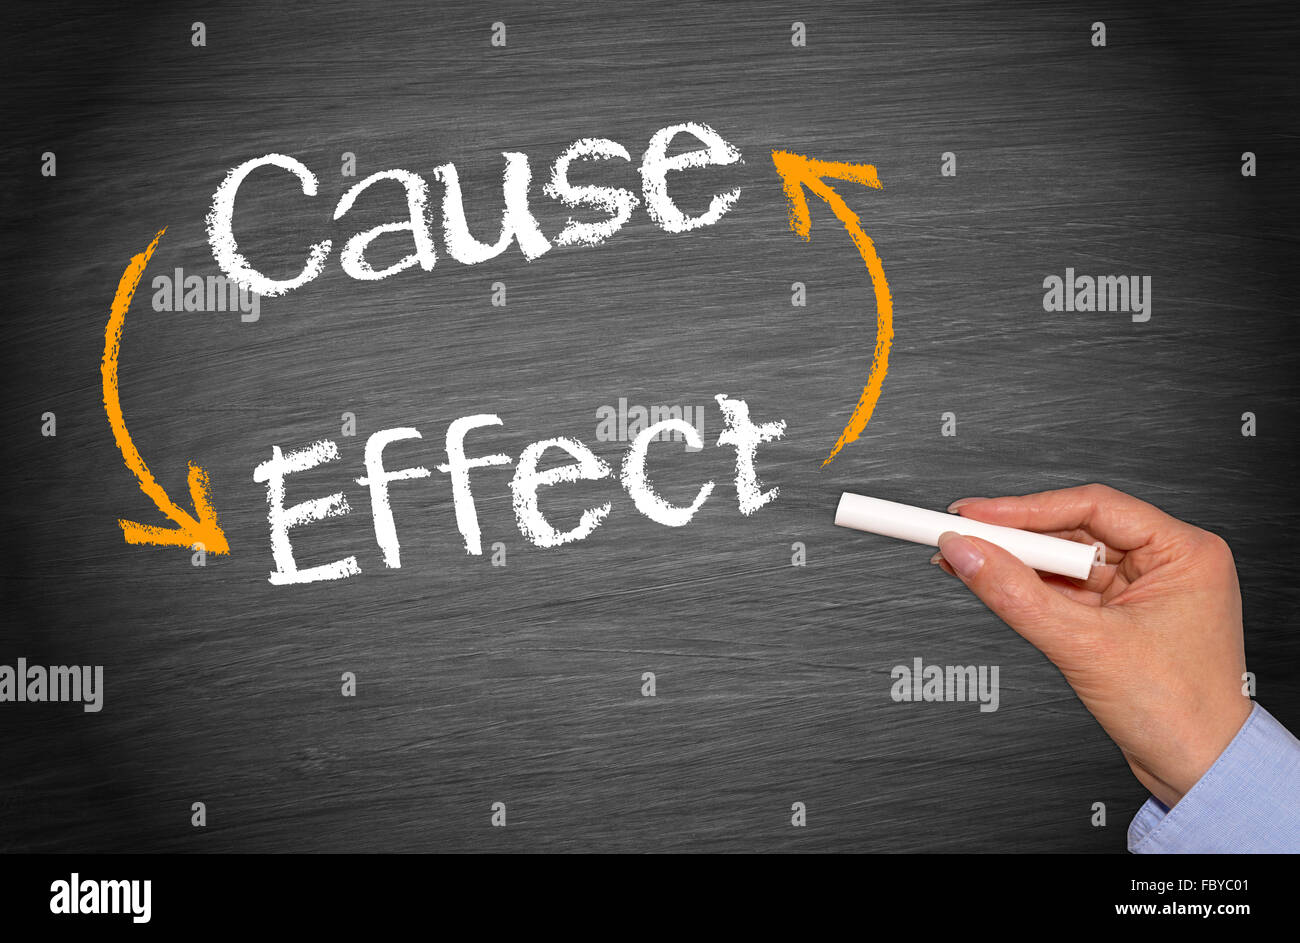 Cause and Effect Stock Photo